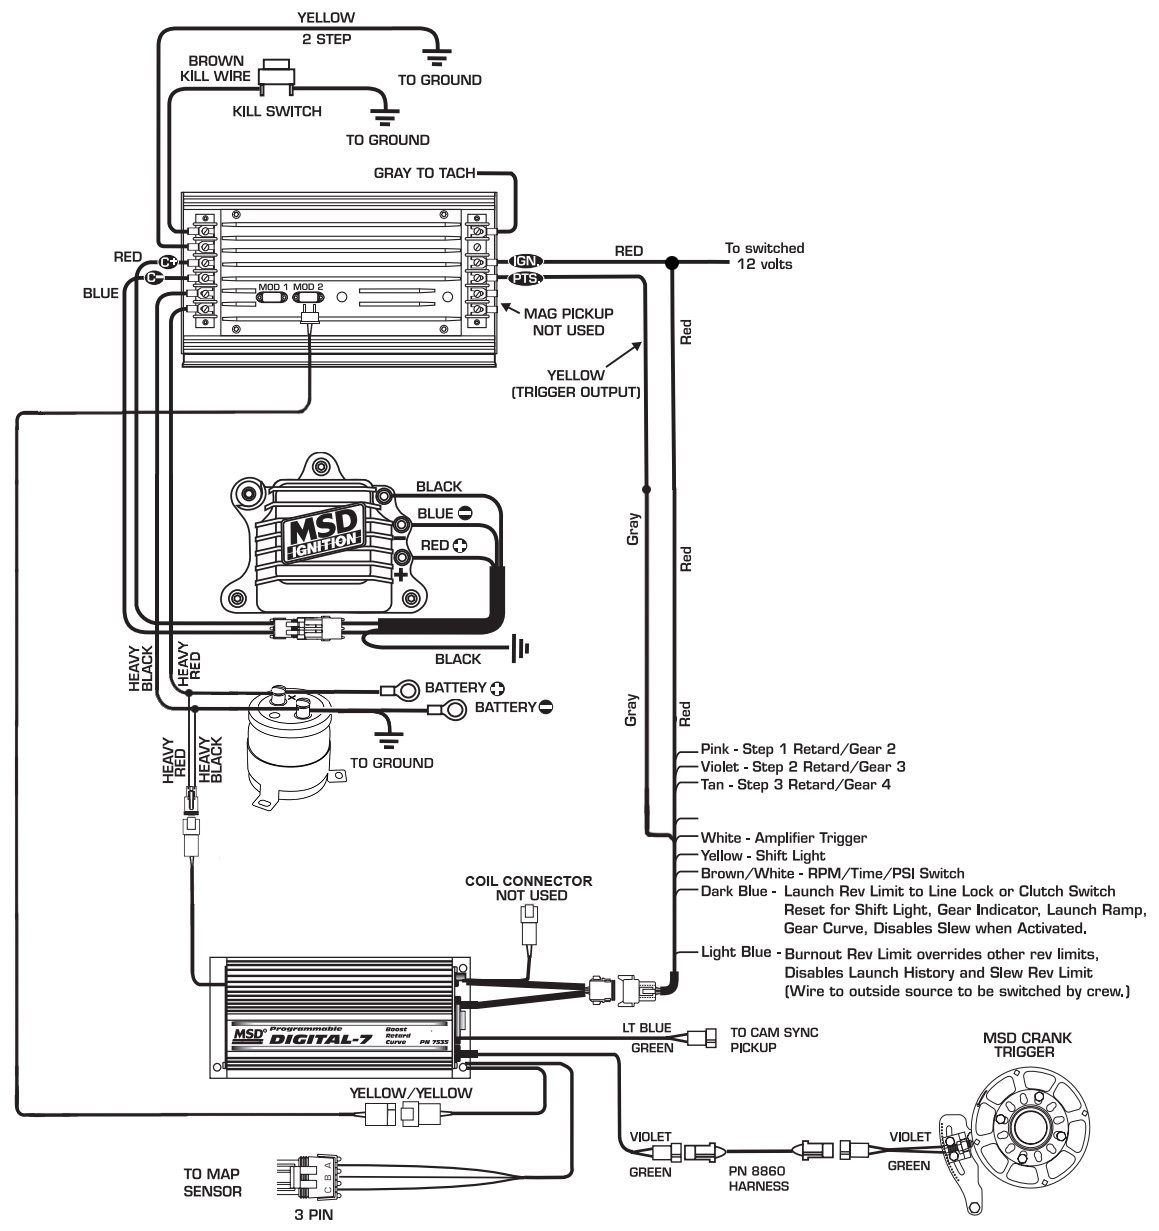 msd 2 step wiring diagram honda motorcycle headlight 7531 get free image about